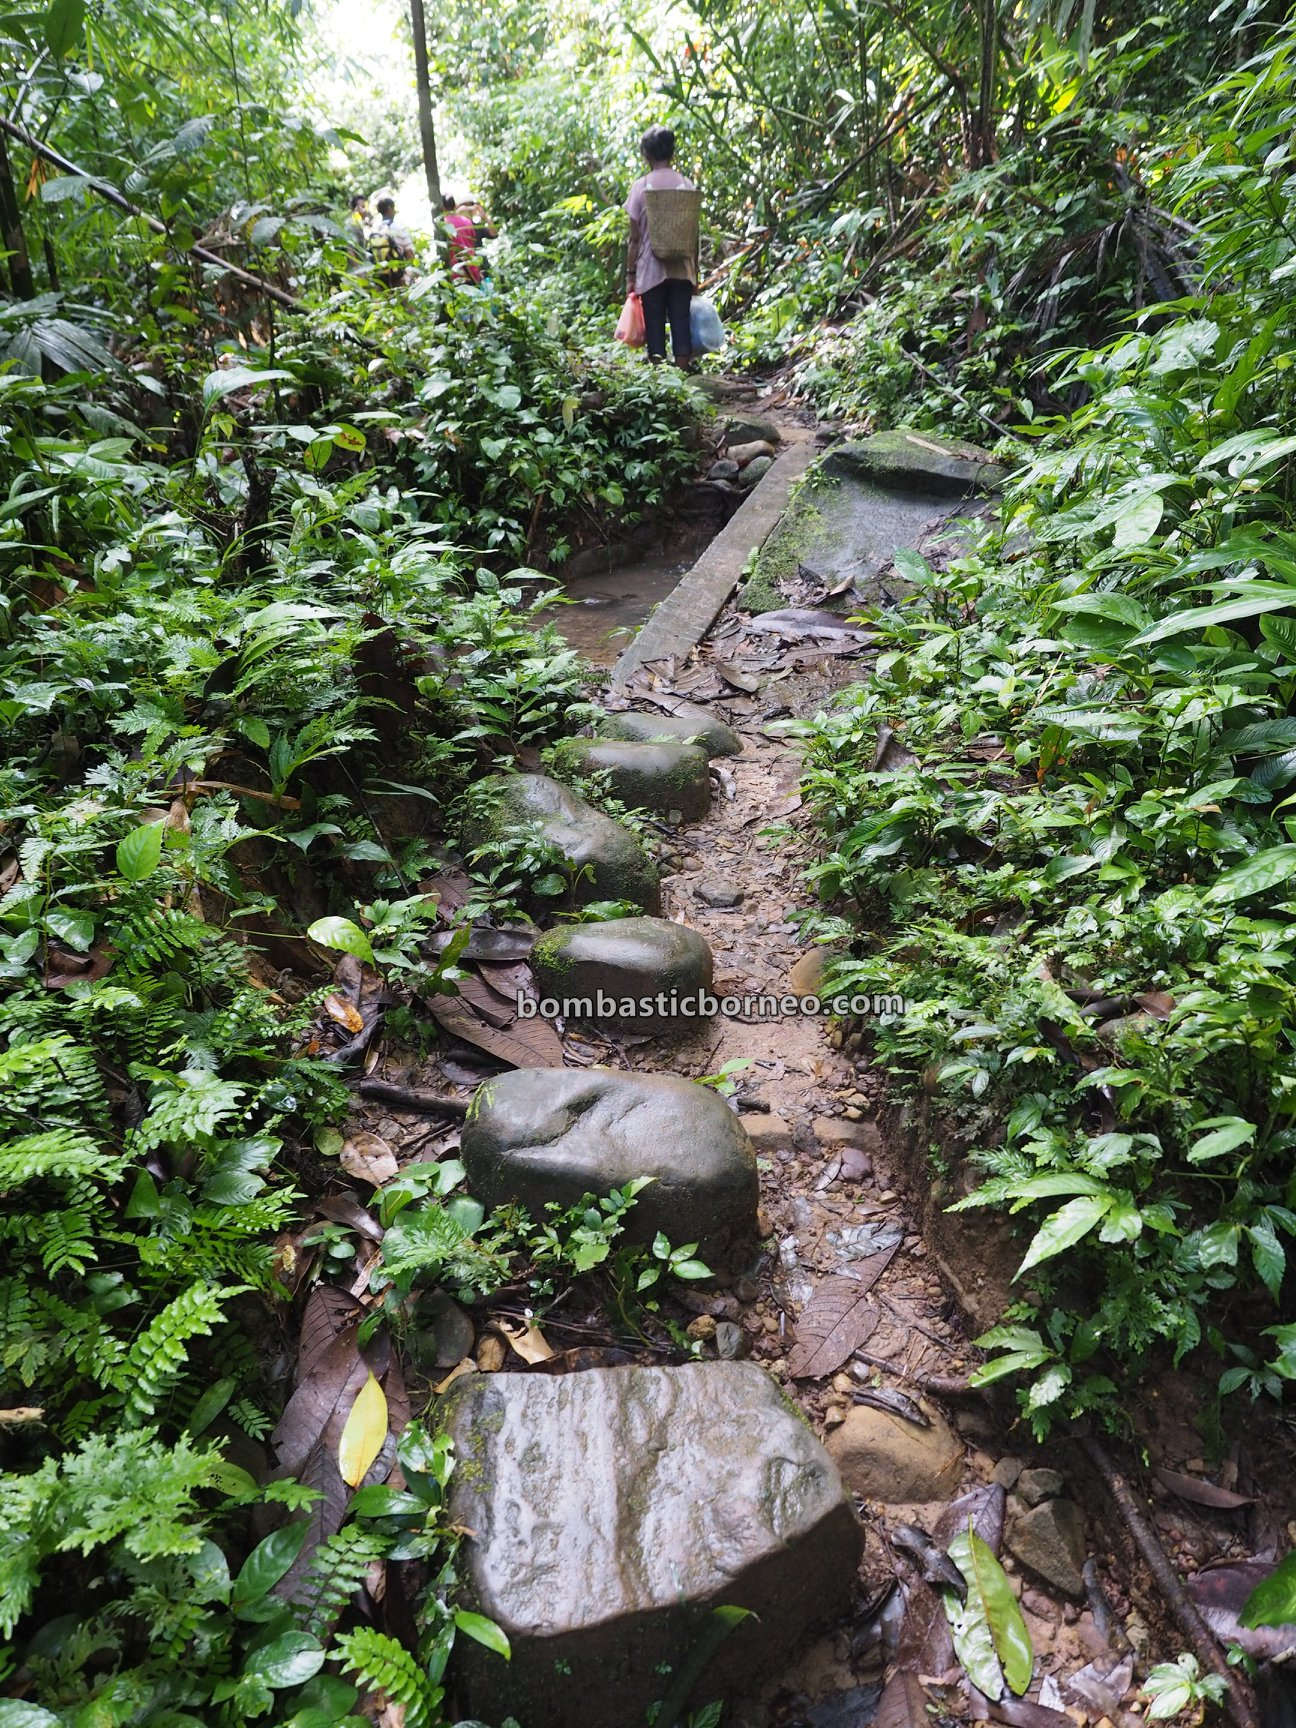 Dusun Simpang Empat, jungle trekking, hiking, exploration, traditional, Desa Bengkawan, Seluas, wisata alam, tourist attraction, travel guide, native, village, Trans Borneo, 婆罗洲丛林徒步, 印尼西加里曼丹